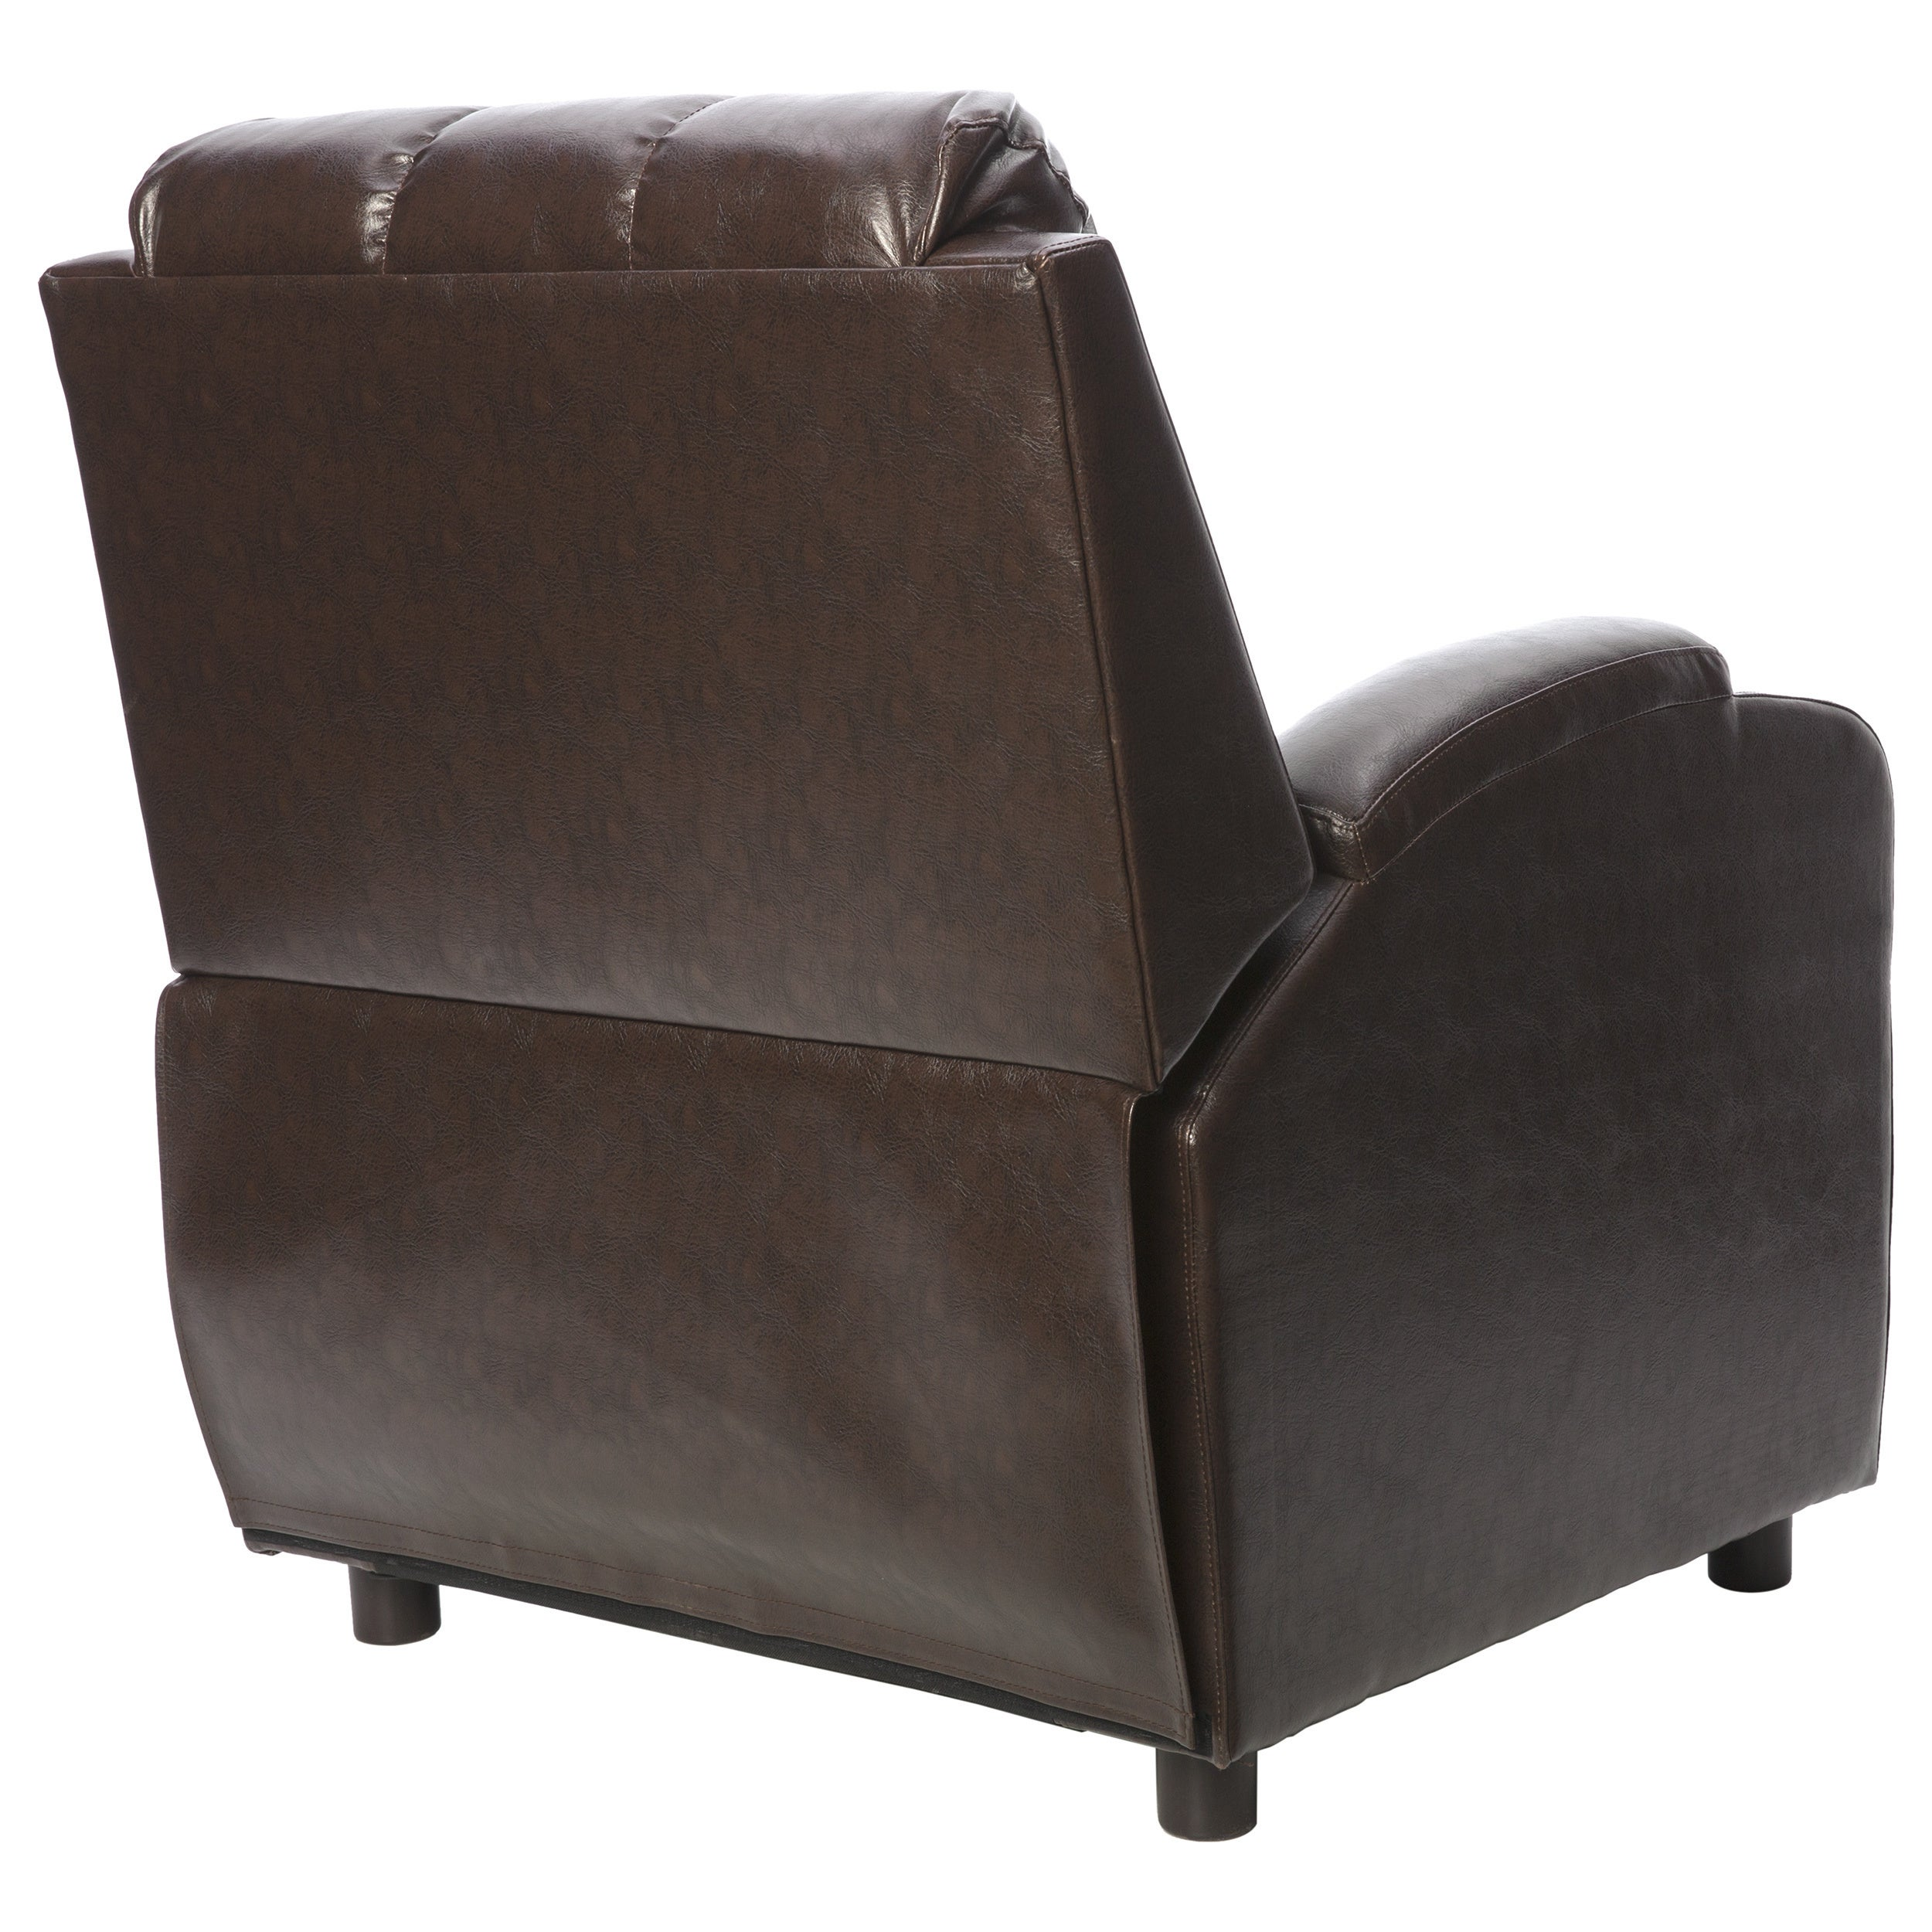 download recliner email share image com high bishop product resolution via flexsteel leather a